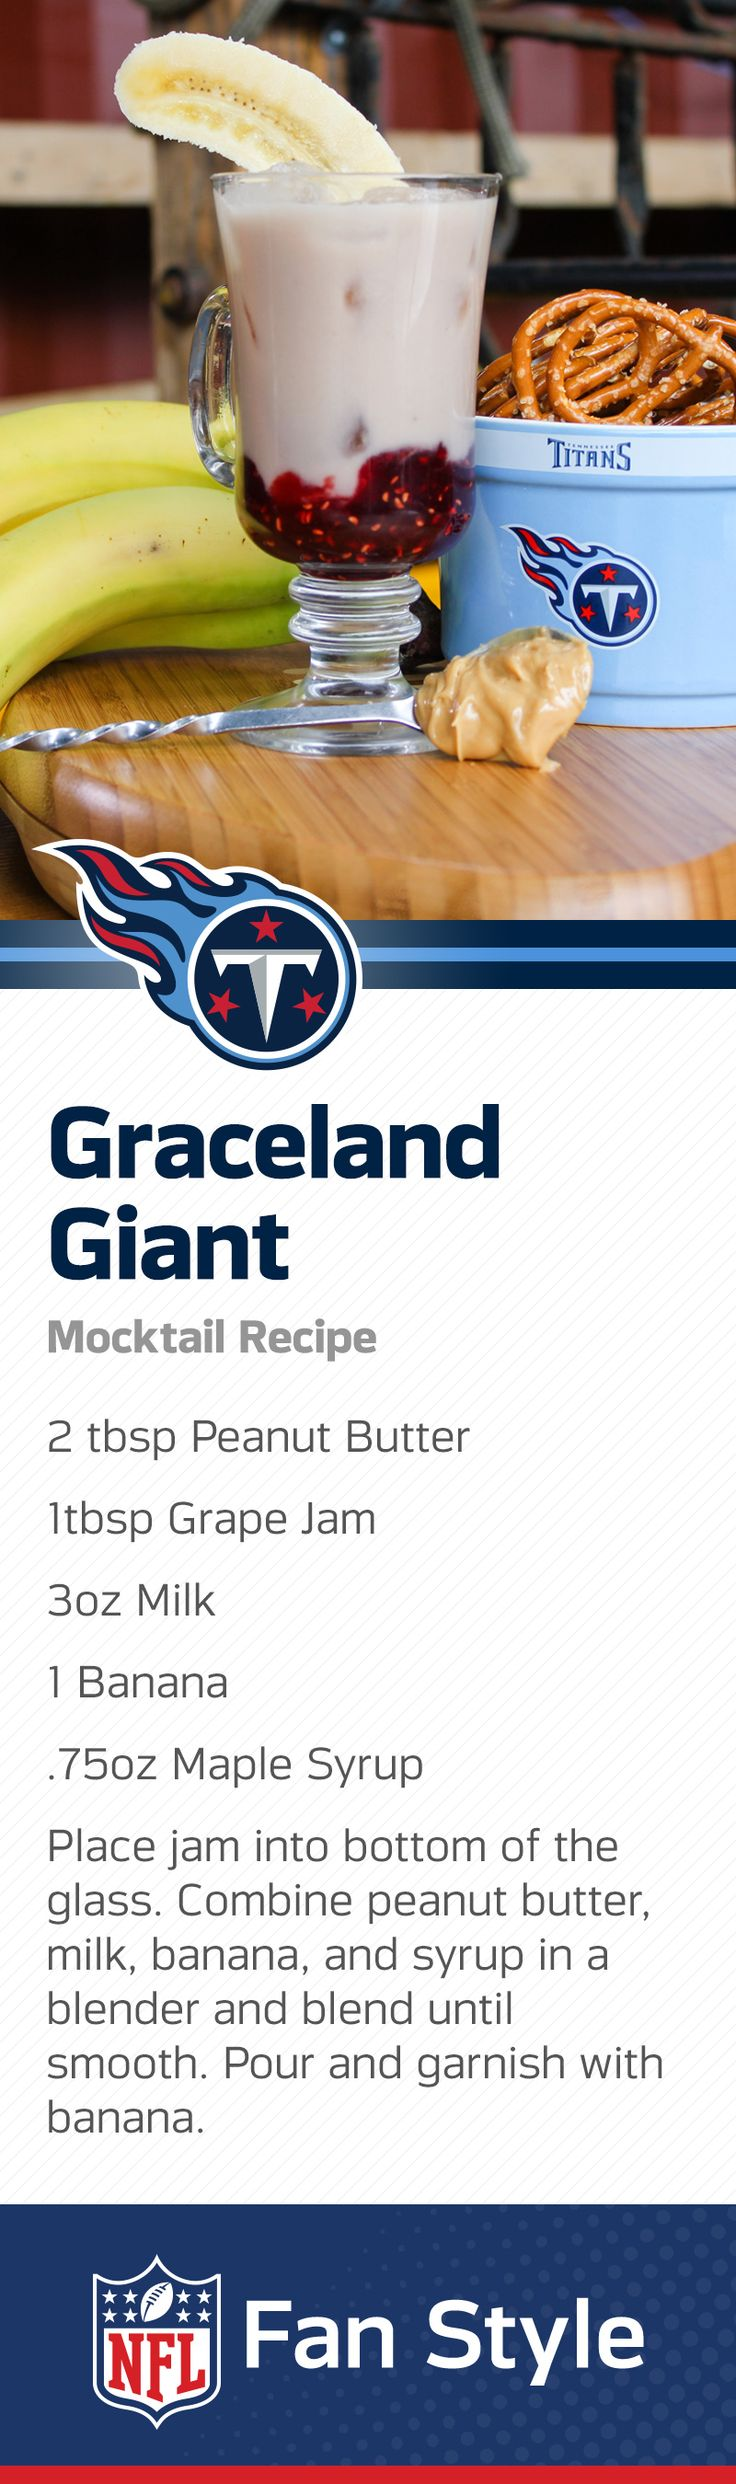 """Tennessee is home to the Titans and """"the king."""" Combine these two celebrated hometown heroes with this banana and PB+J mocktail. All that's left to do is sit back, take a sip, and get ready for some good ol' fashion football."""